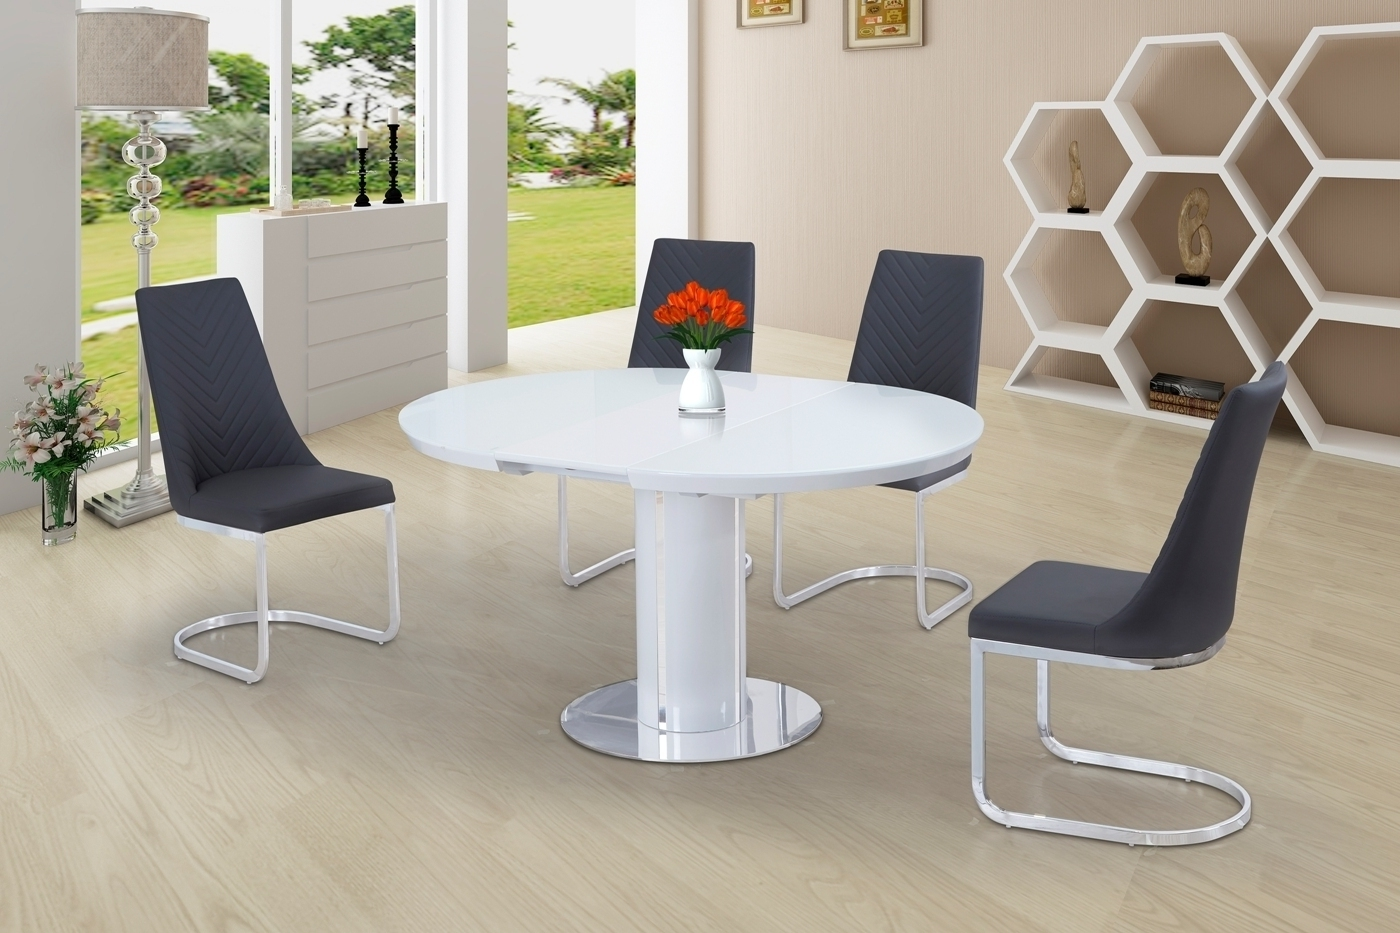 Well Known Round White Glass High Gloss Dining Table And 6 Grey Chairs Inside Extending Gloss Dining Tables (View 22 of 25)